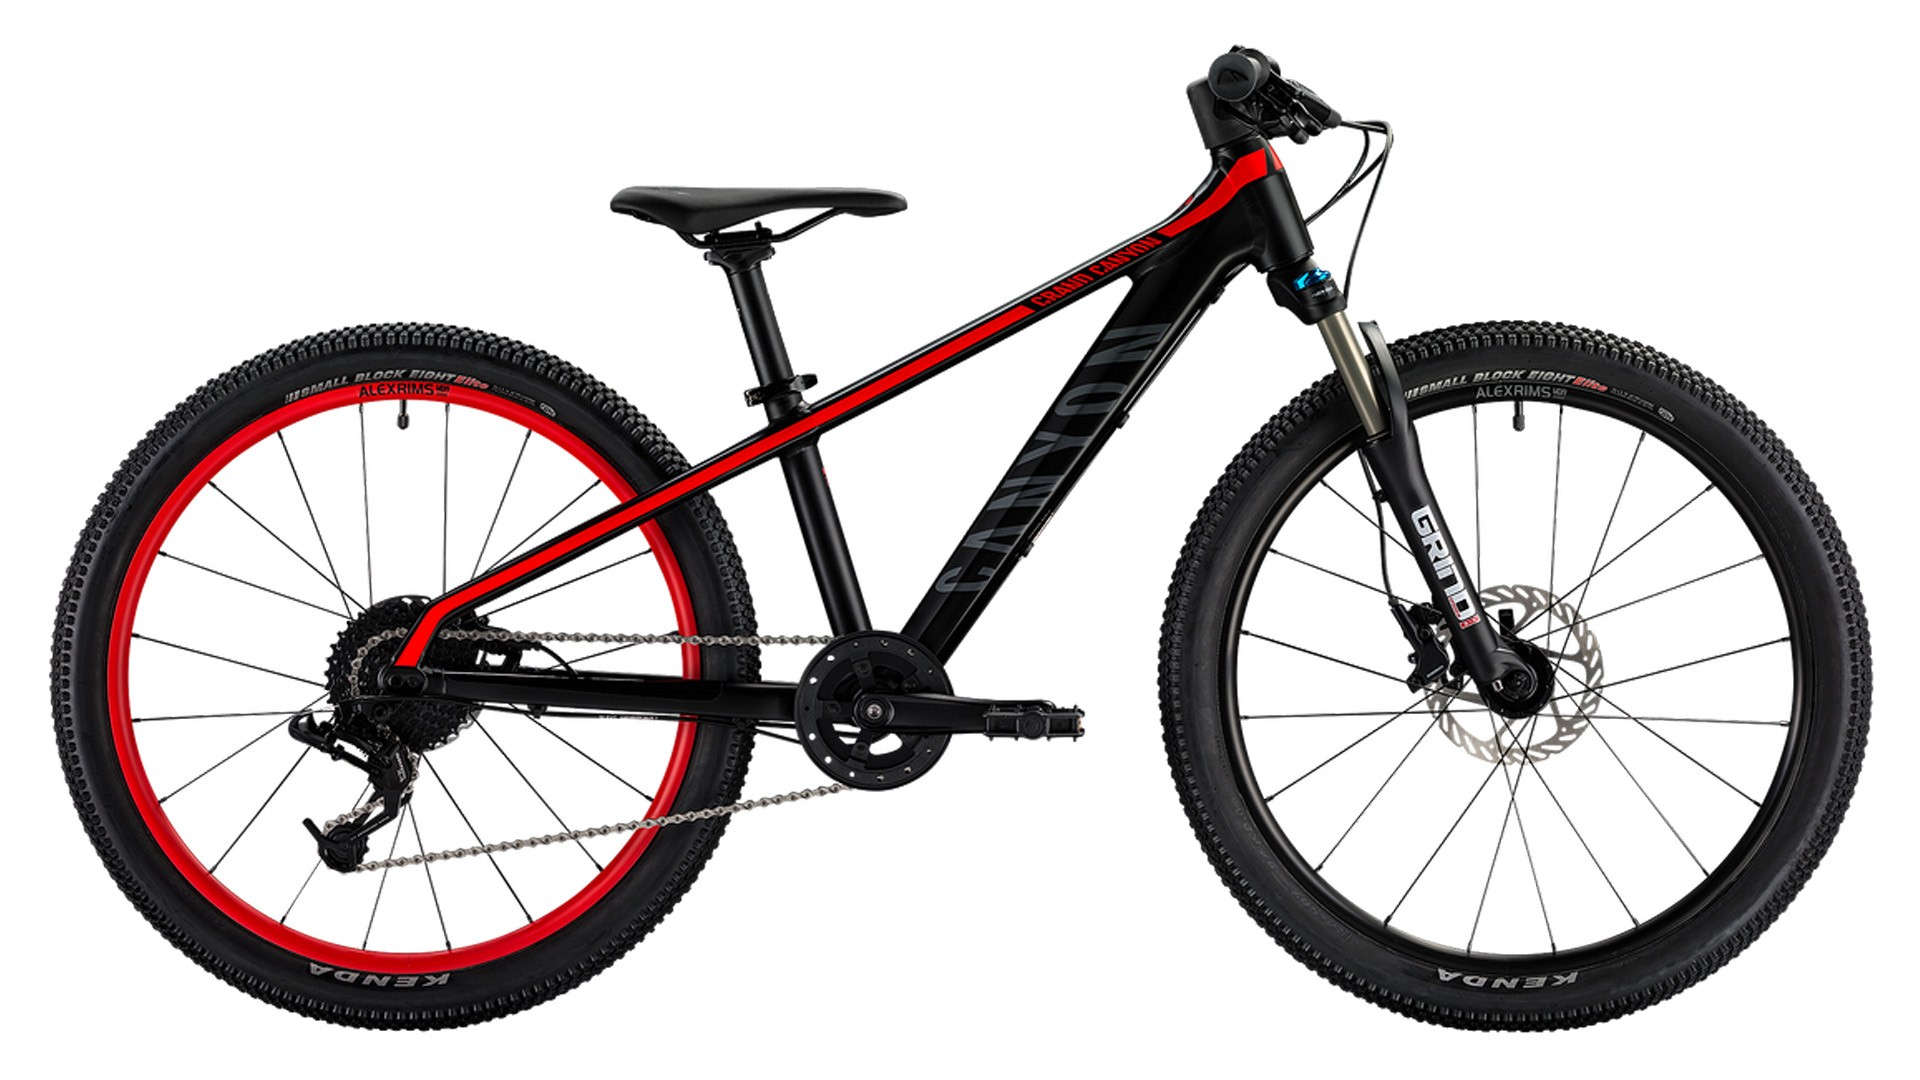 The youth version of the Grand Canyon is a competent hardtail that's perfect for kids